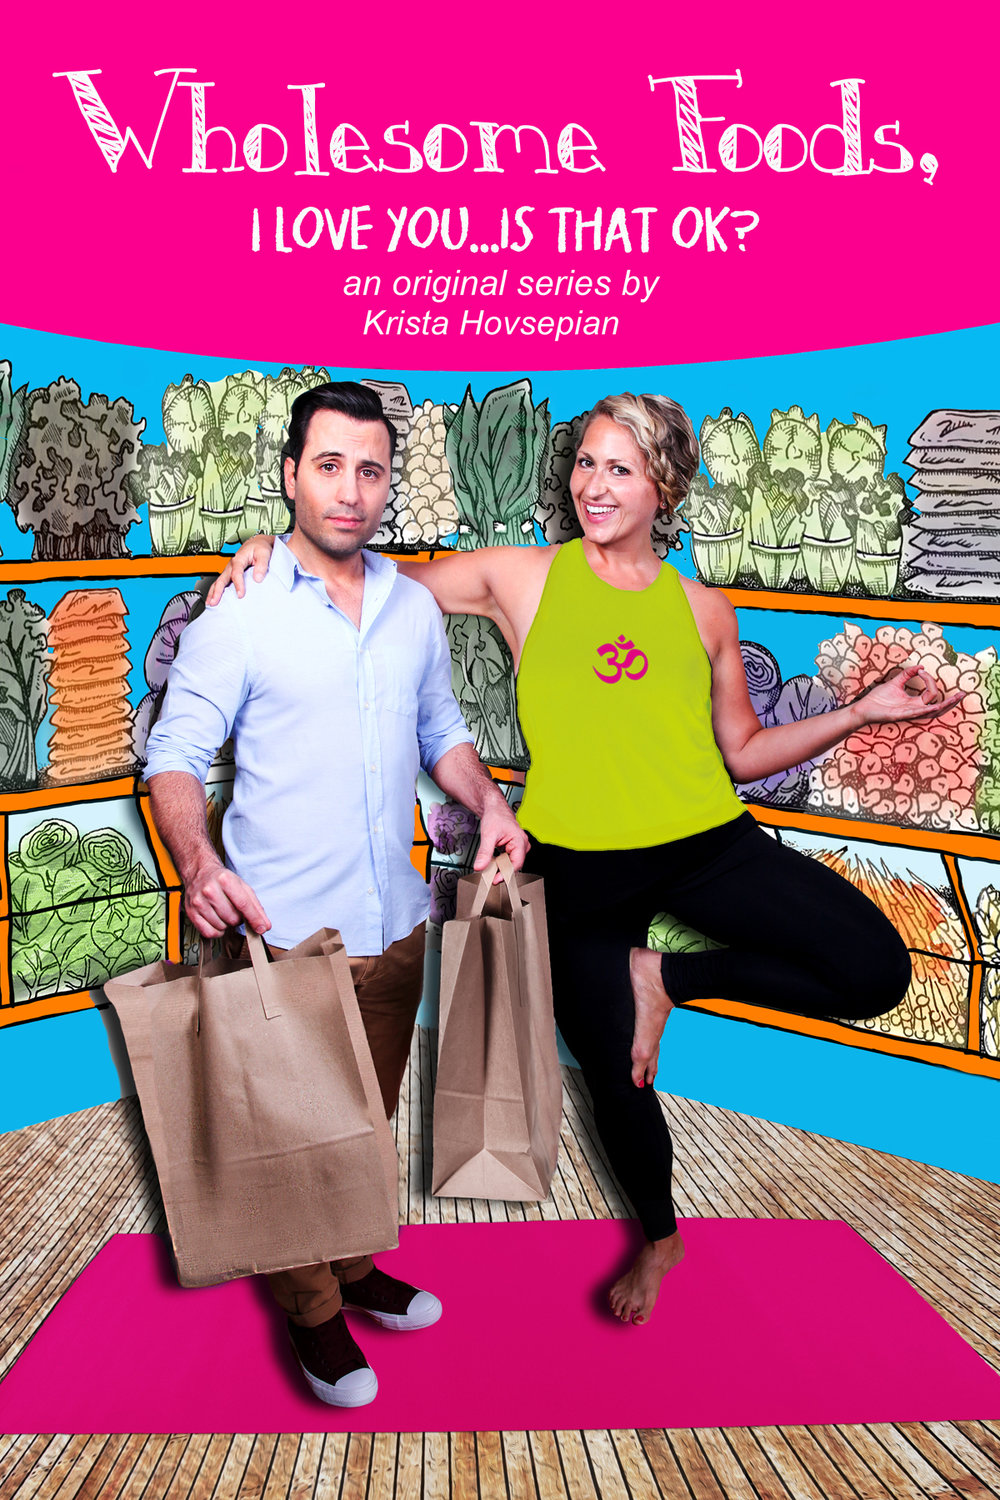 Official Poster featuring Daniel De Santo and Krista Hovsepian